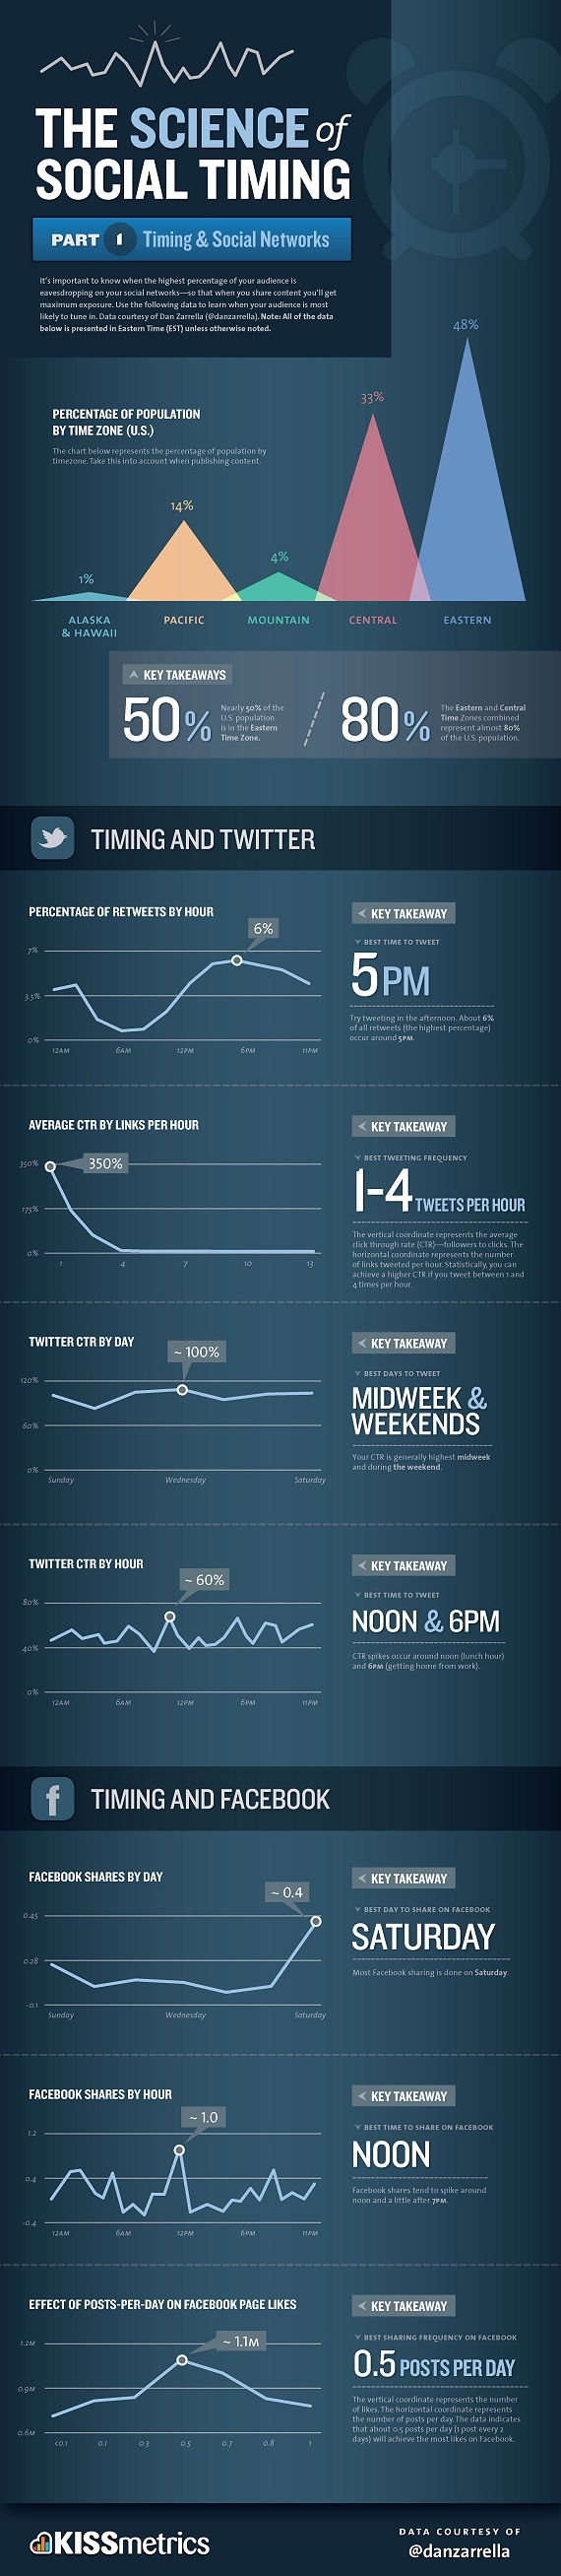 the-science-of-social-timing-infographic